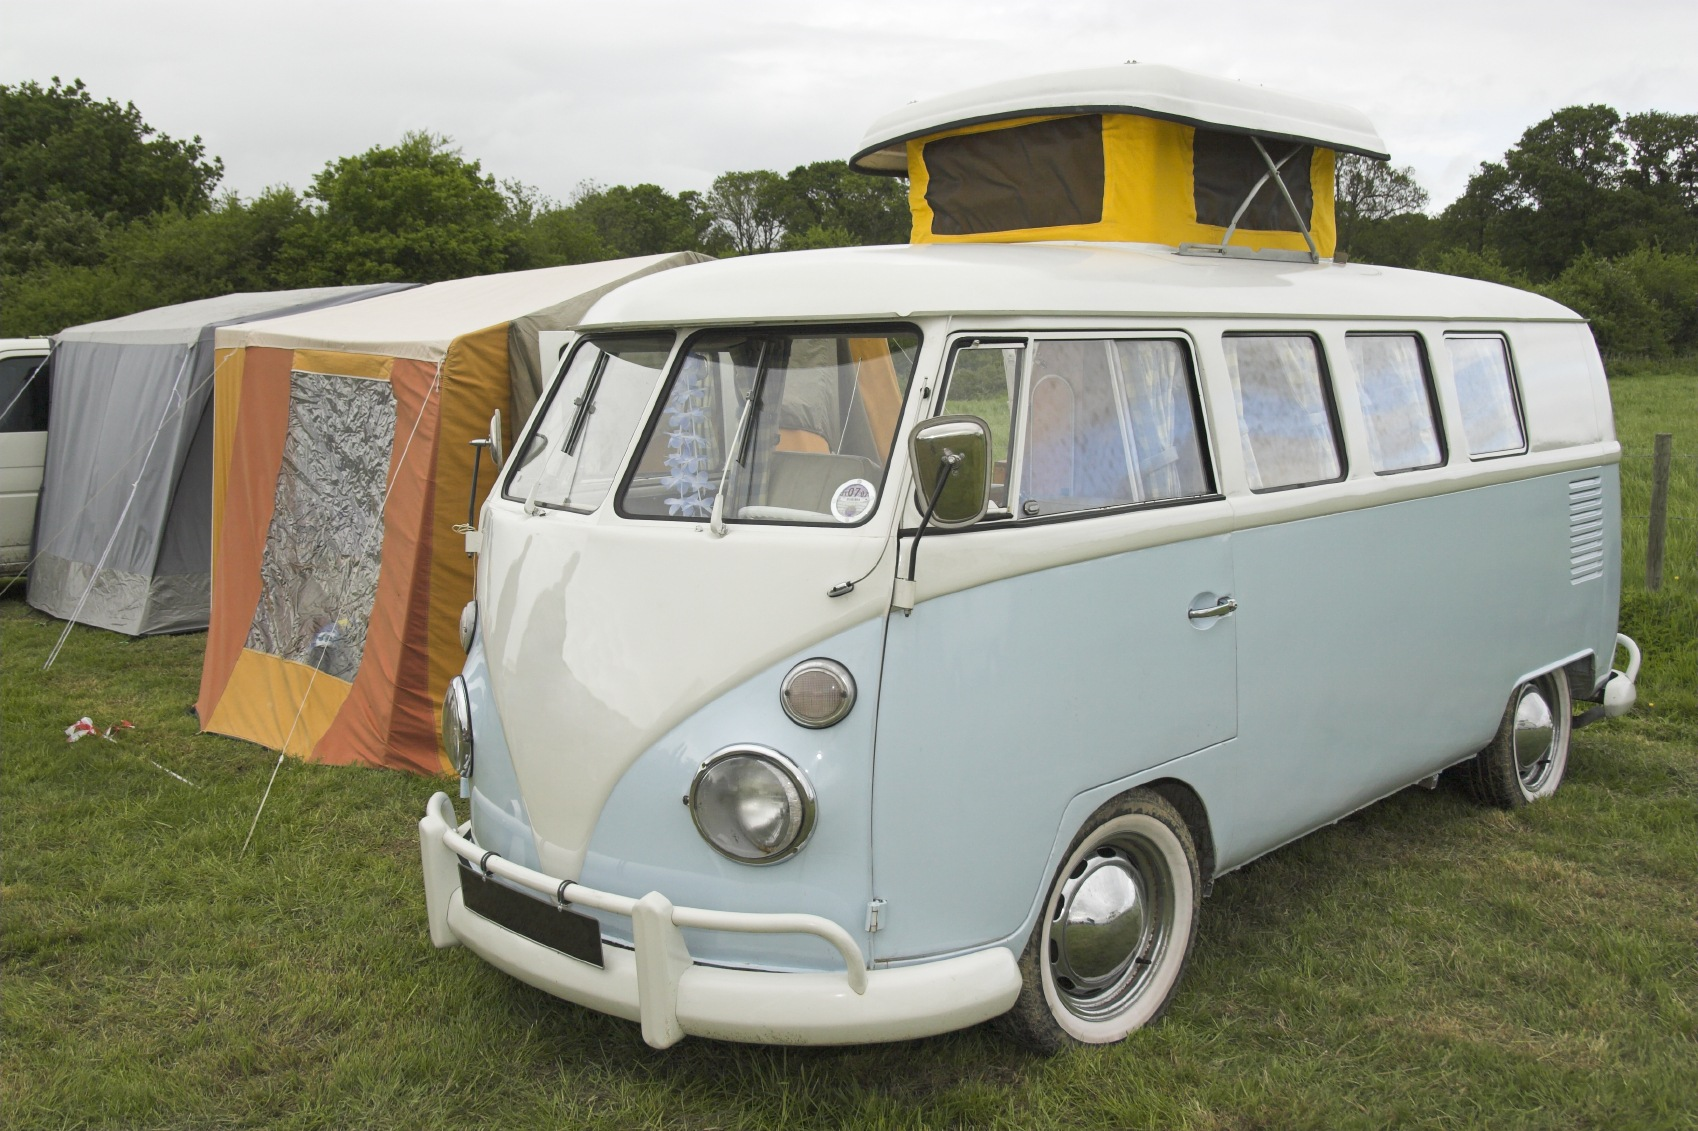 POWER CARS  Volkswagen campers  vans and